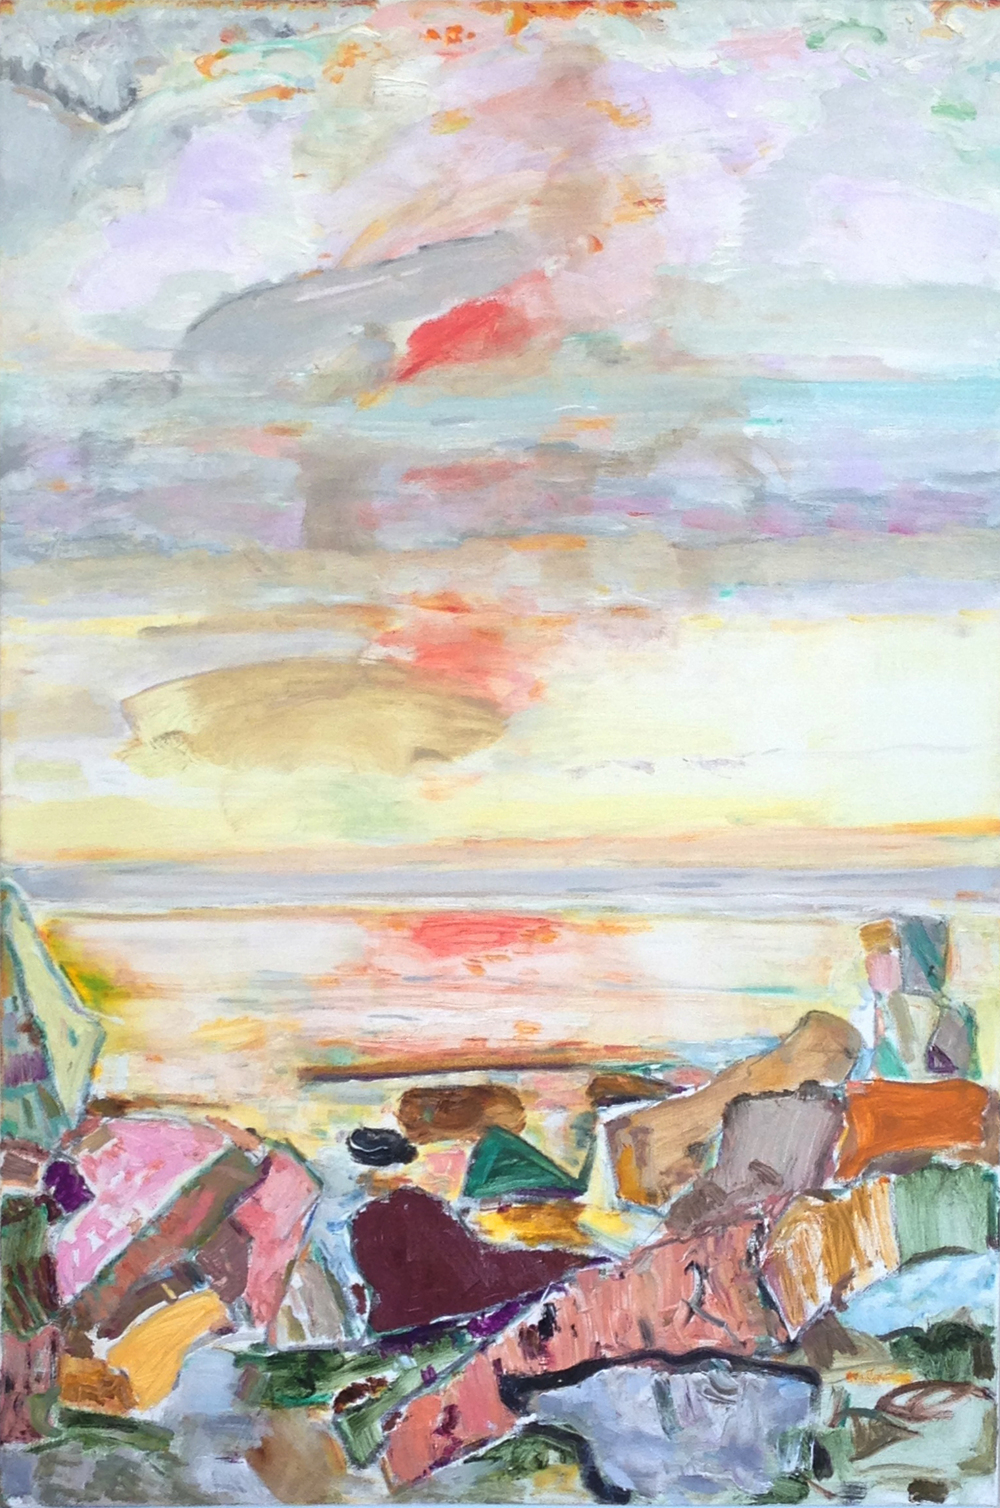 Soft Morning,  2003-05 oil on canvas, 36 x 24 inches